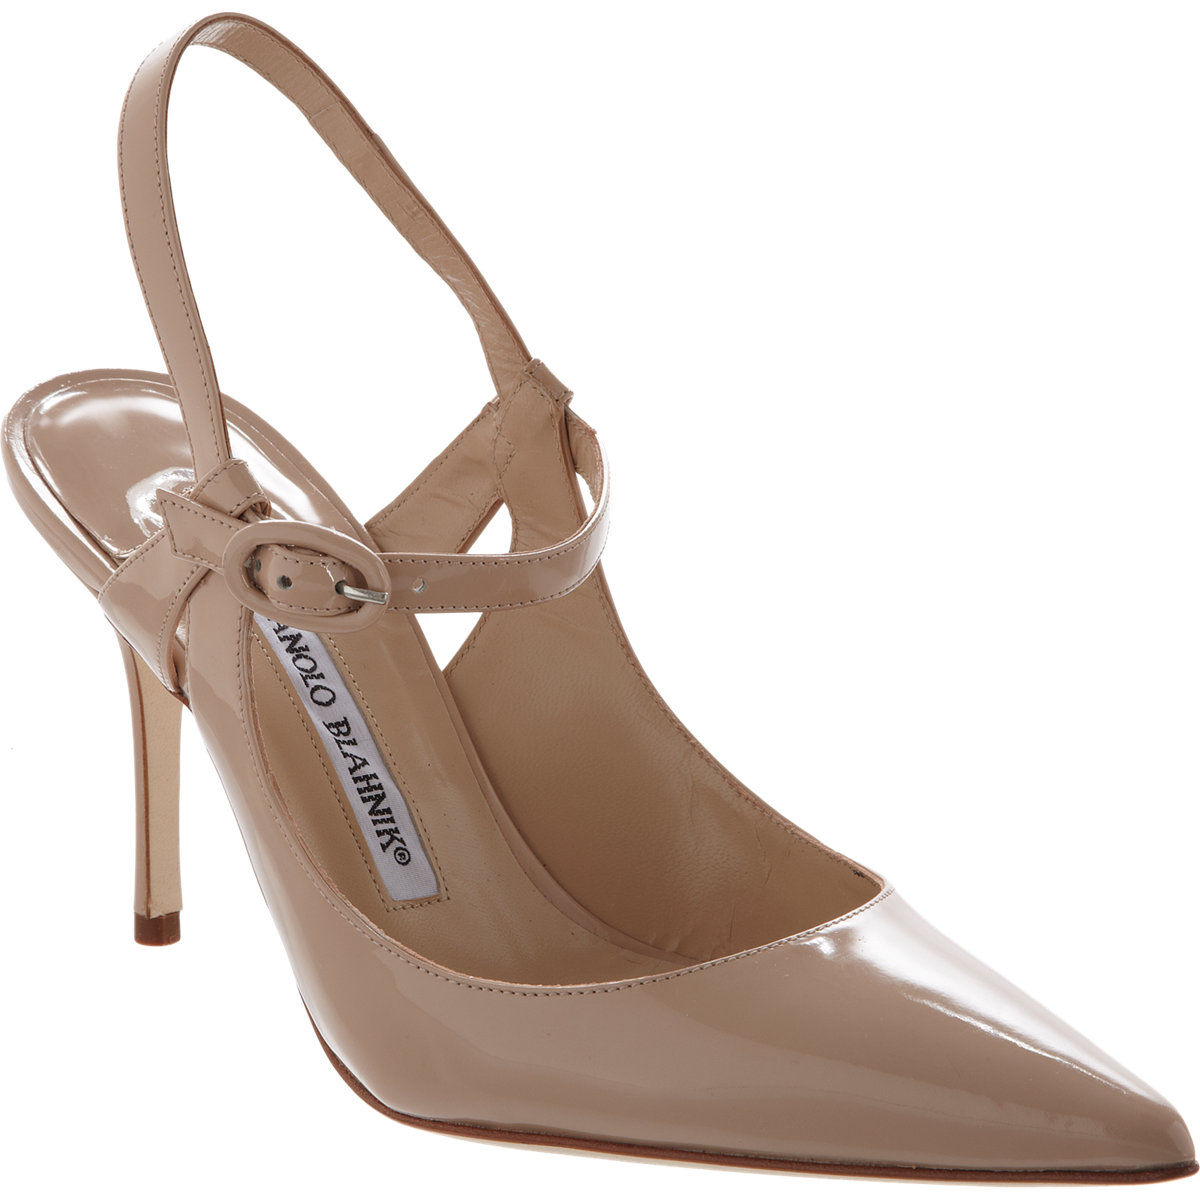 Manolo blahnik koret in beige lyst for Who is manolo blahnik